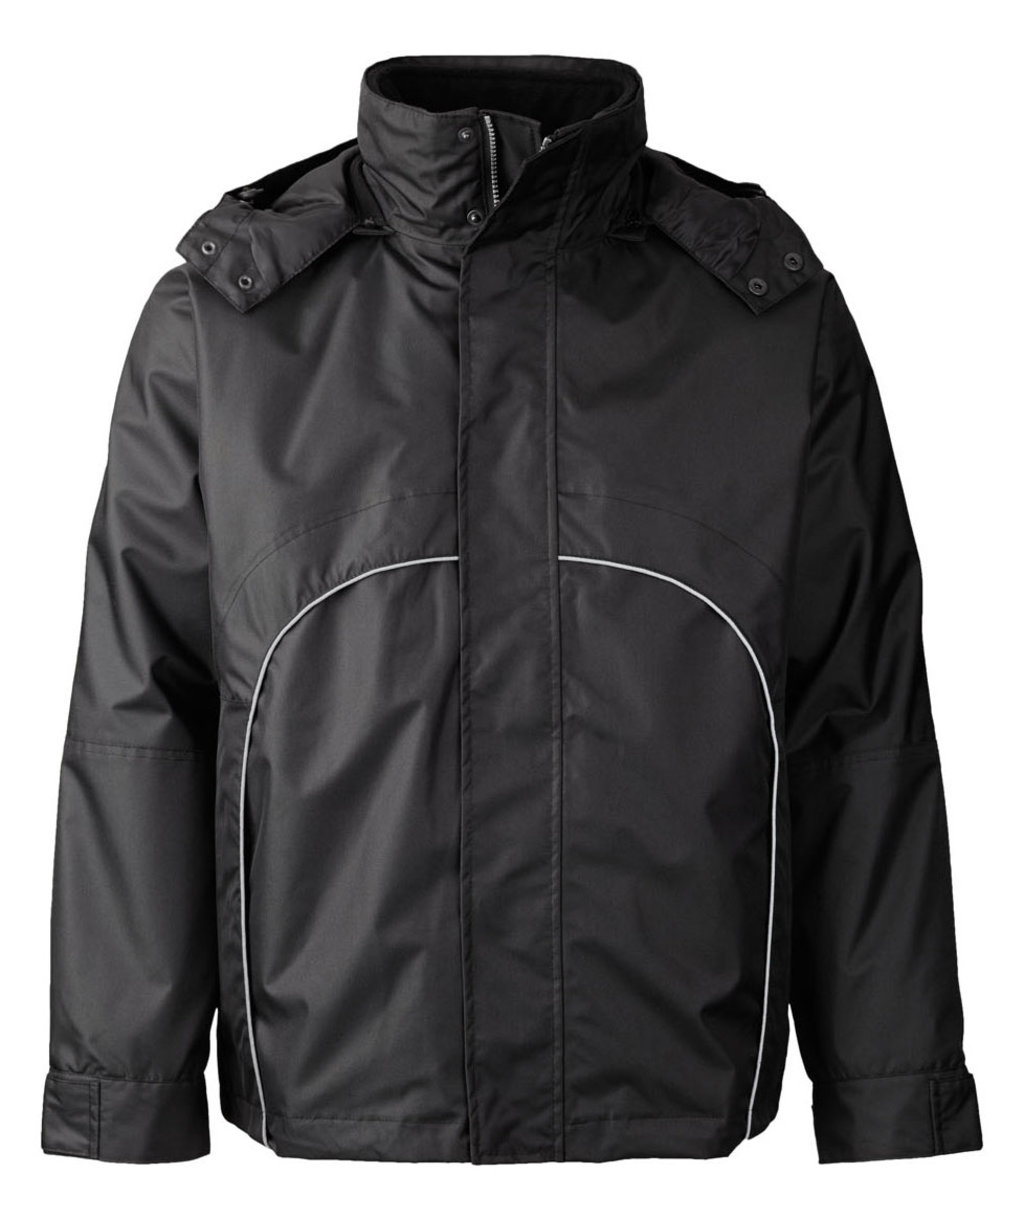 Xplor 3in1 jacket w. fleece inner jacket, Black